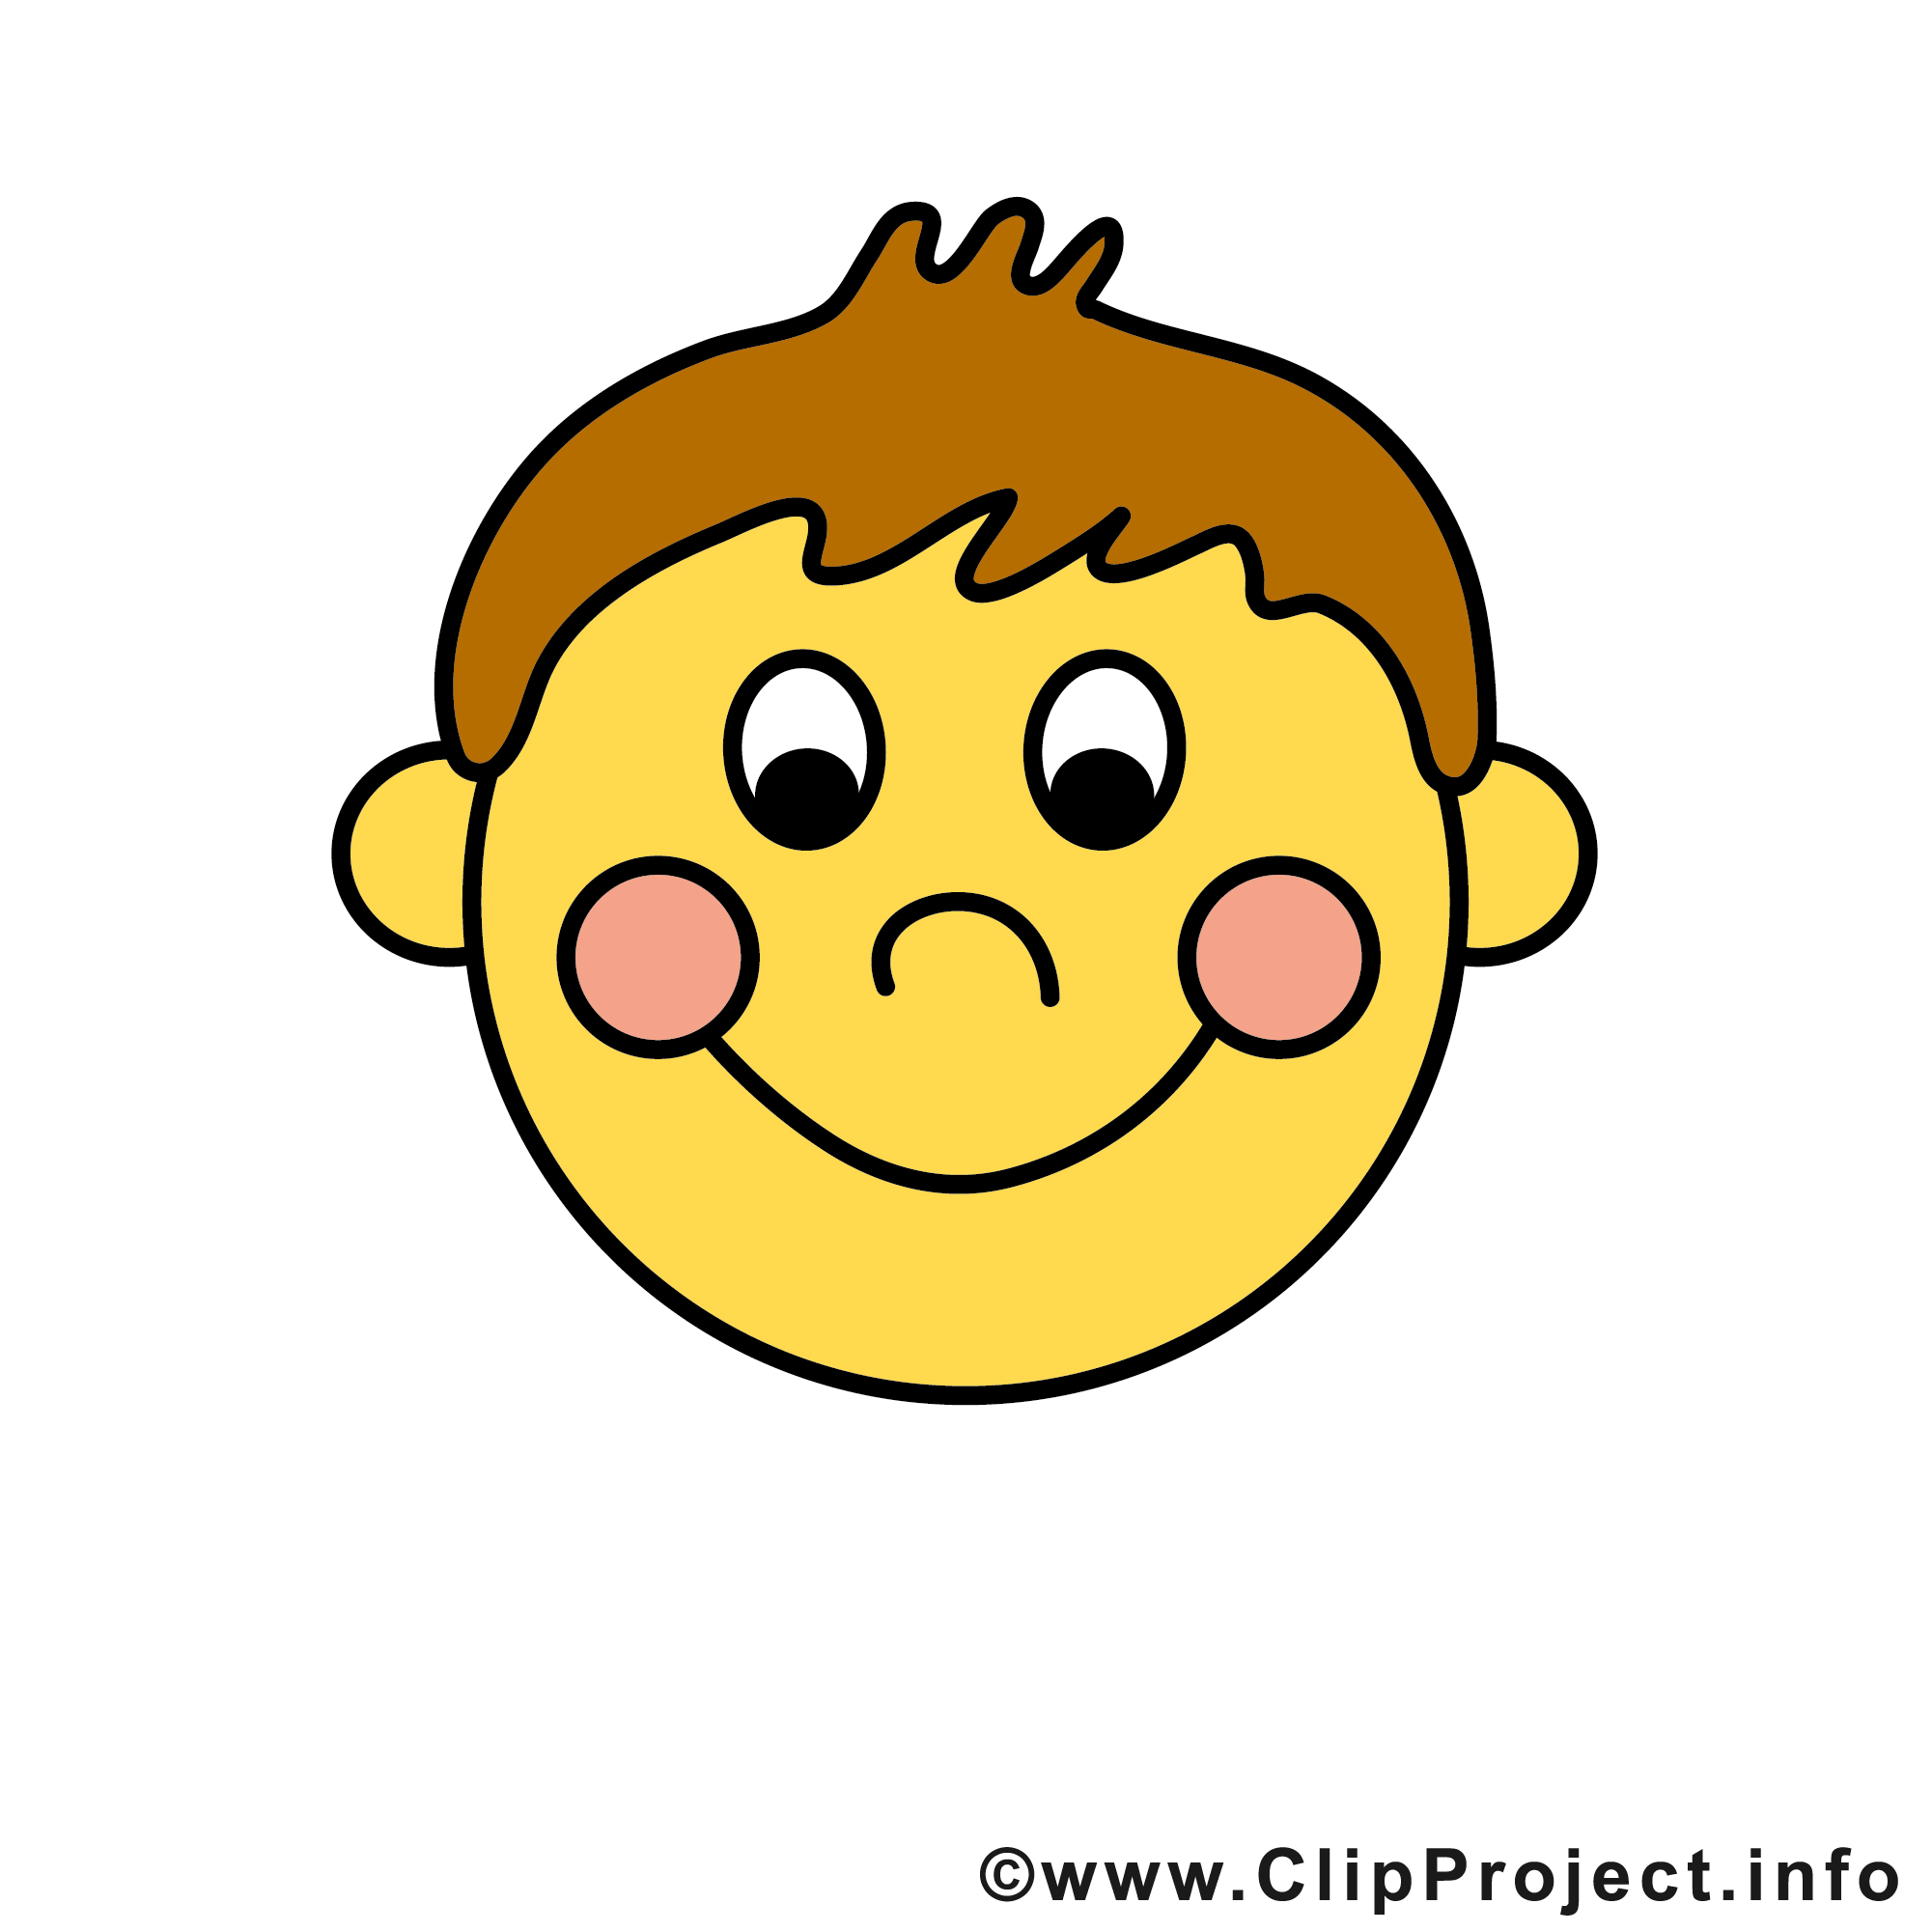 Pictures Clipart Smiling Faces Smiley Clip Art Animated Funny 22